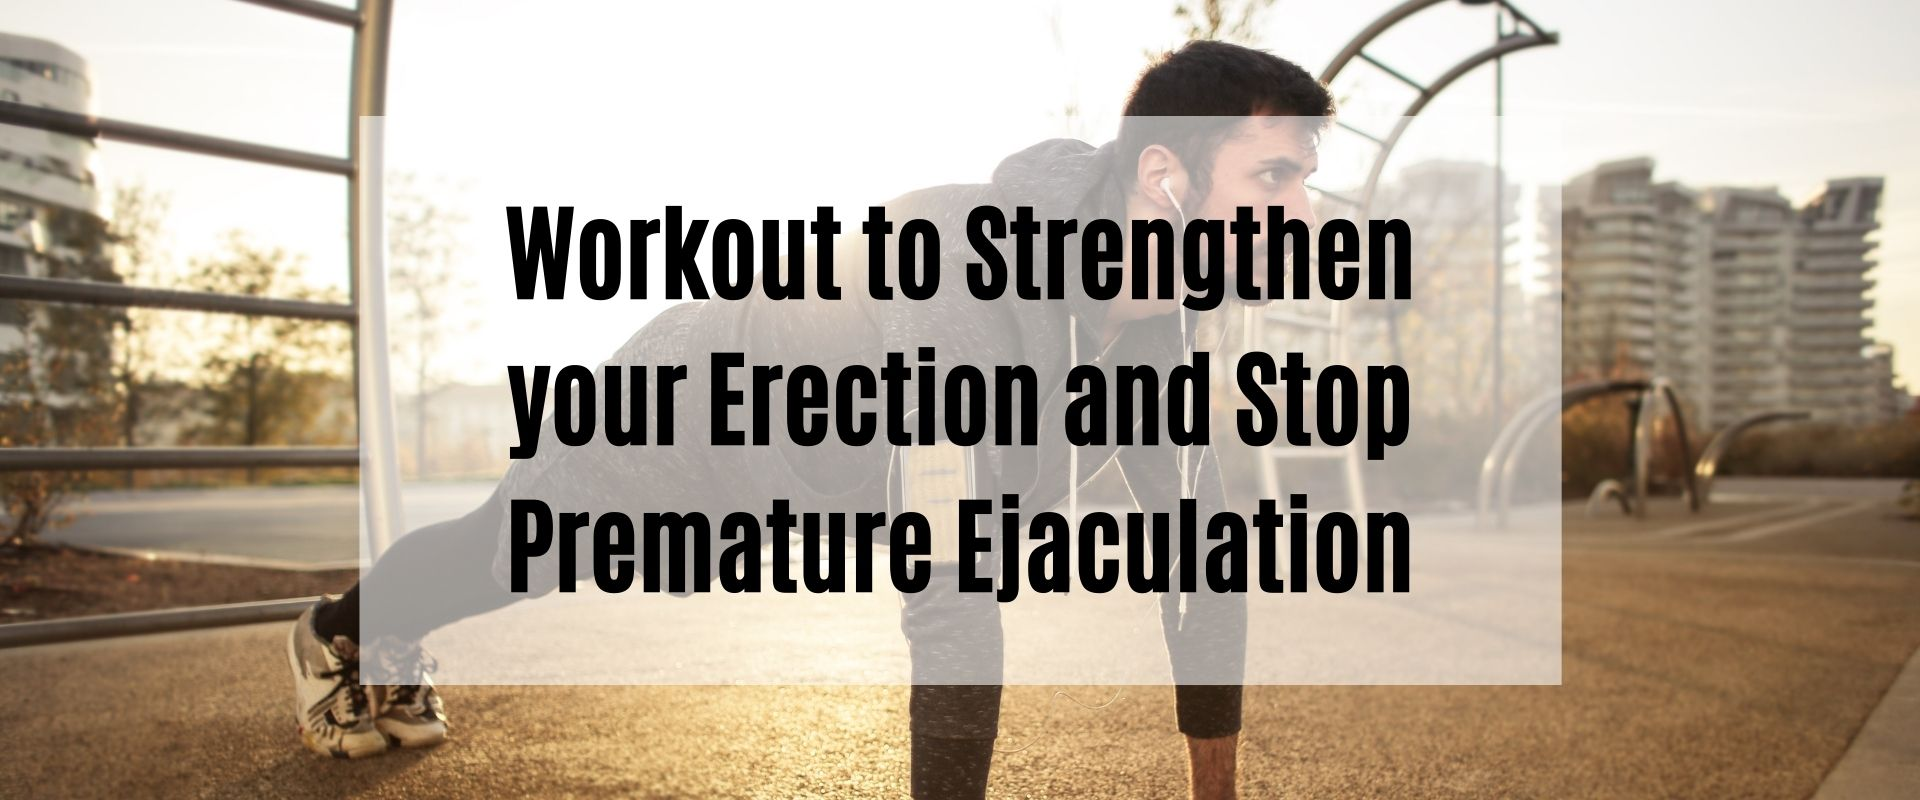 Workout to Strengthen your Erection and Stop Premature Ejaculation